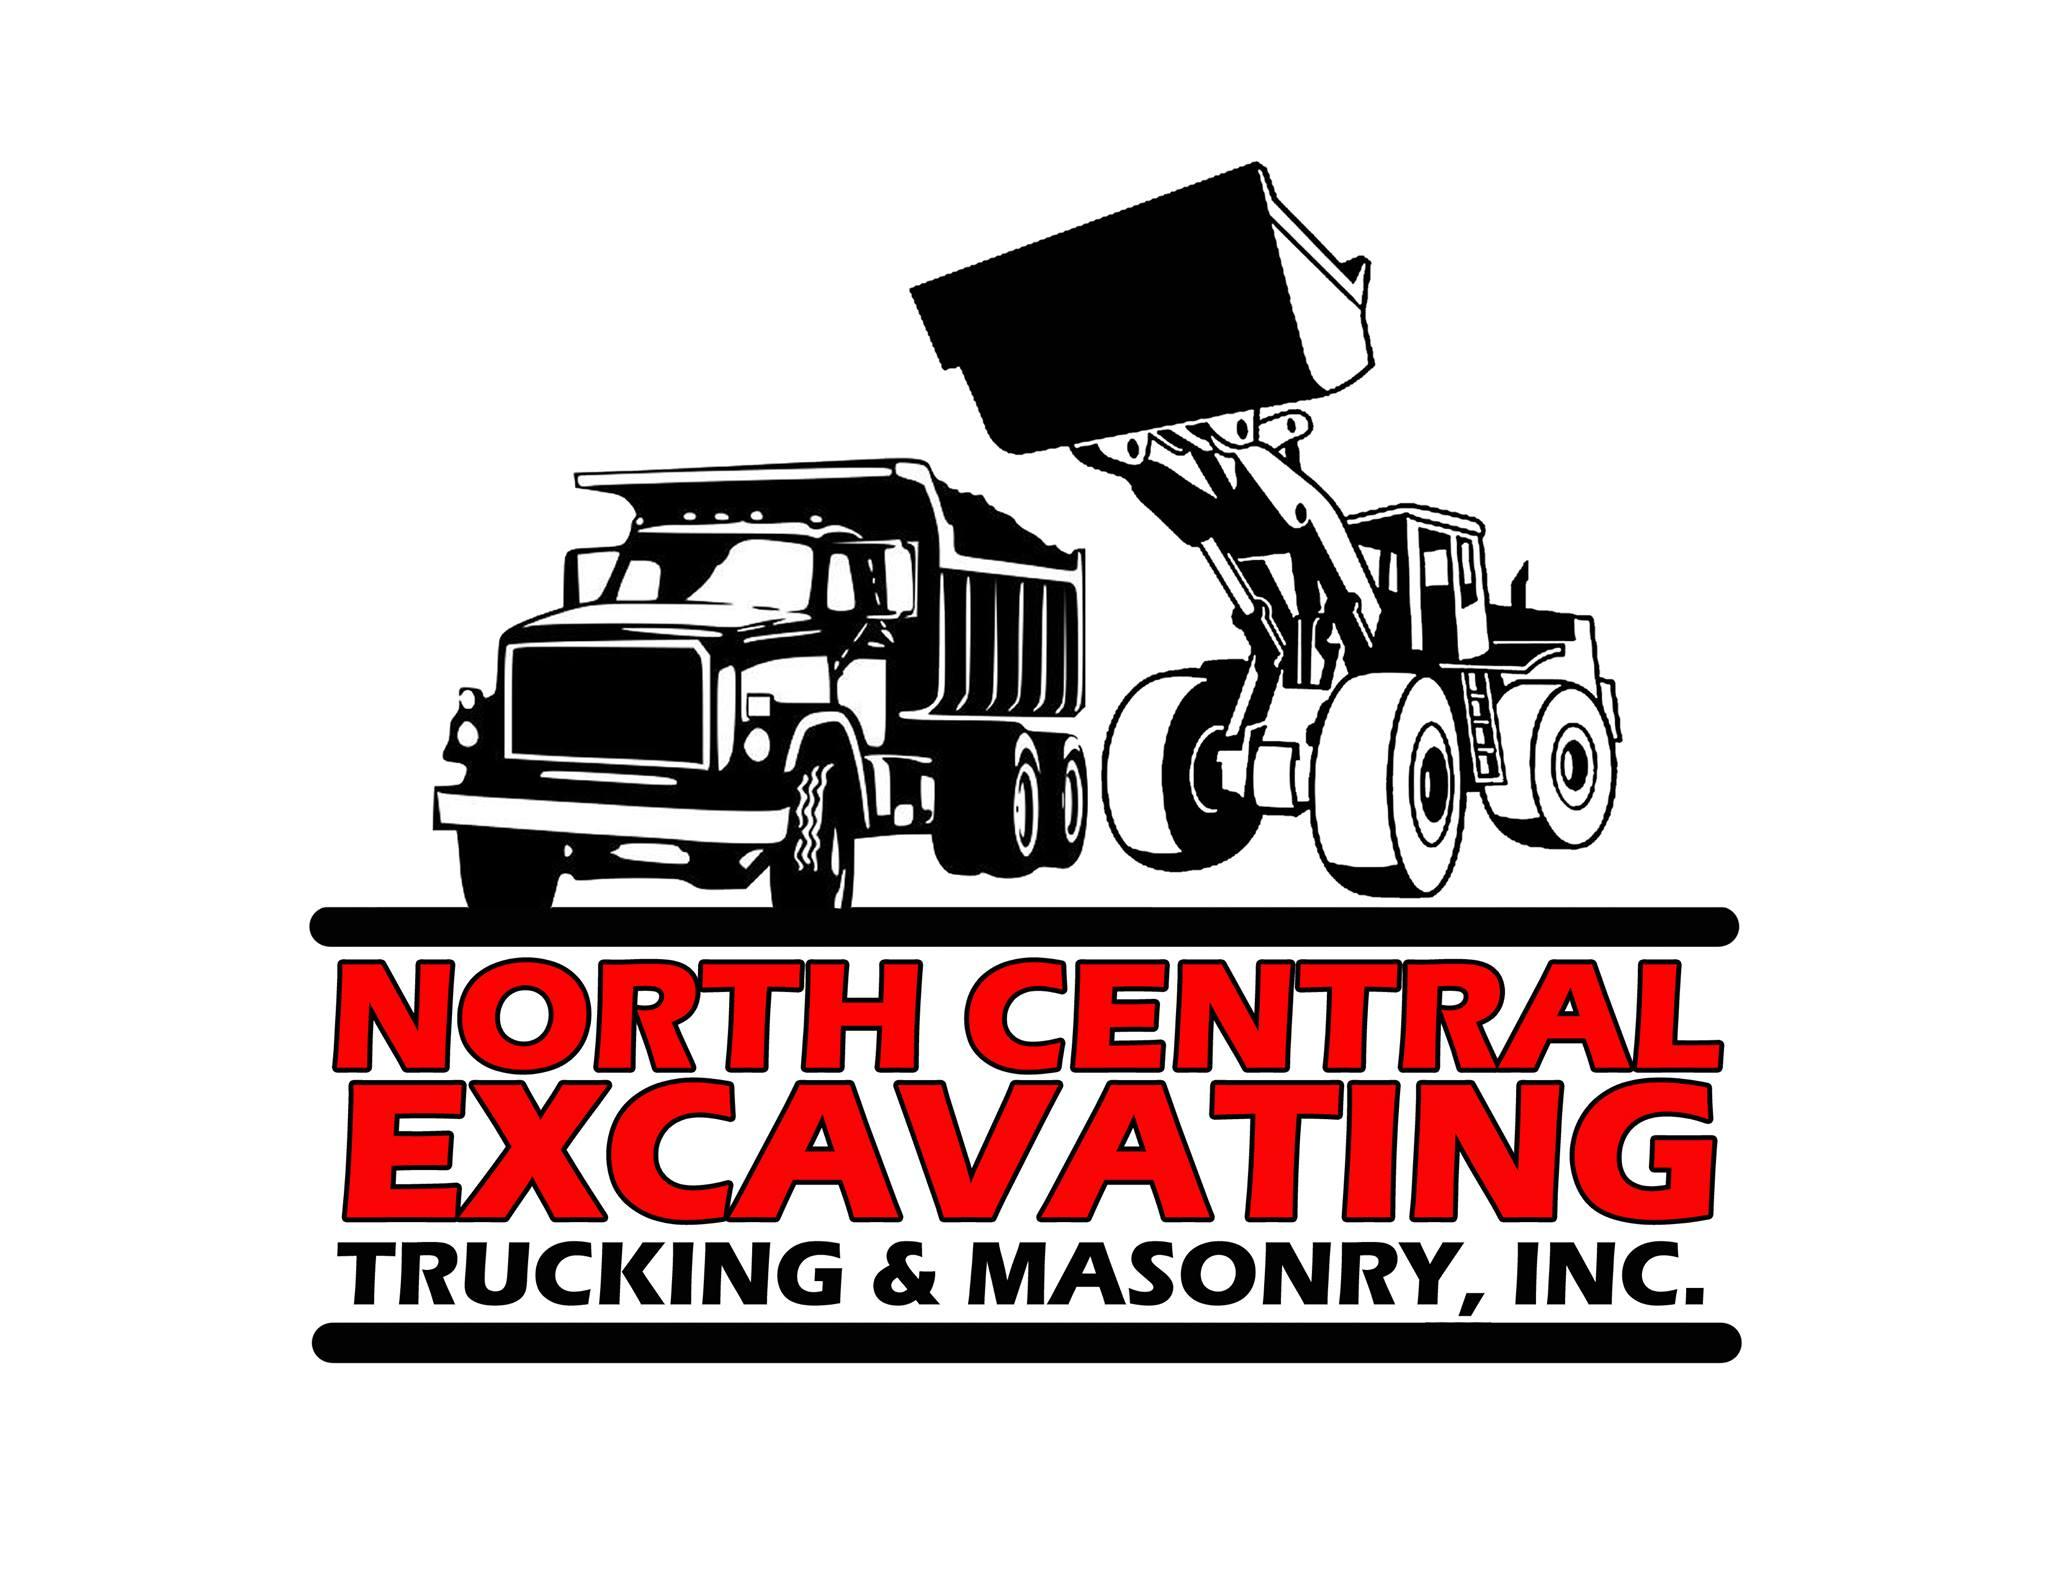 North Central Excavating, Trucking, & Masonry Inc. image 0